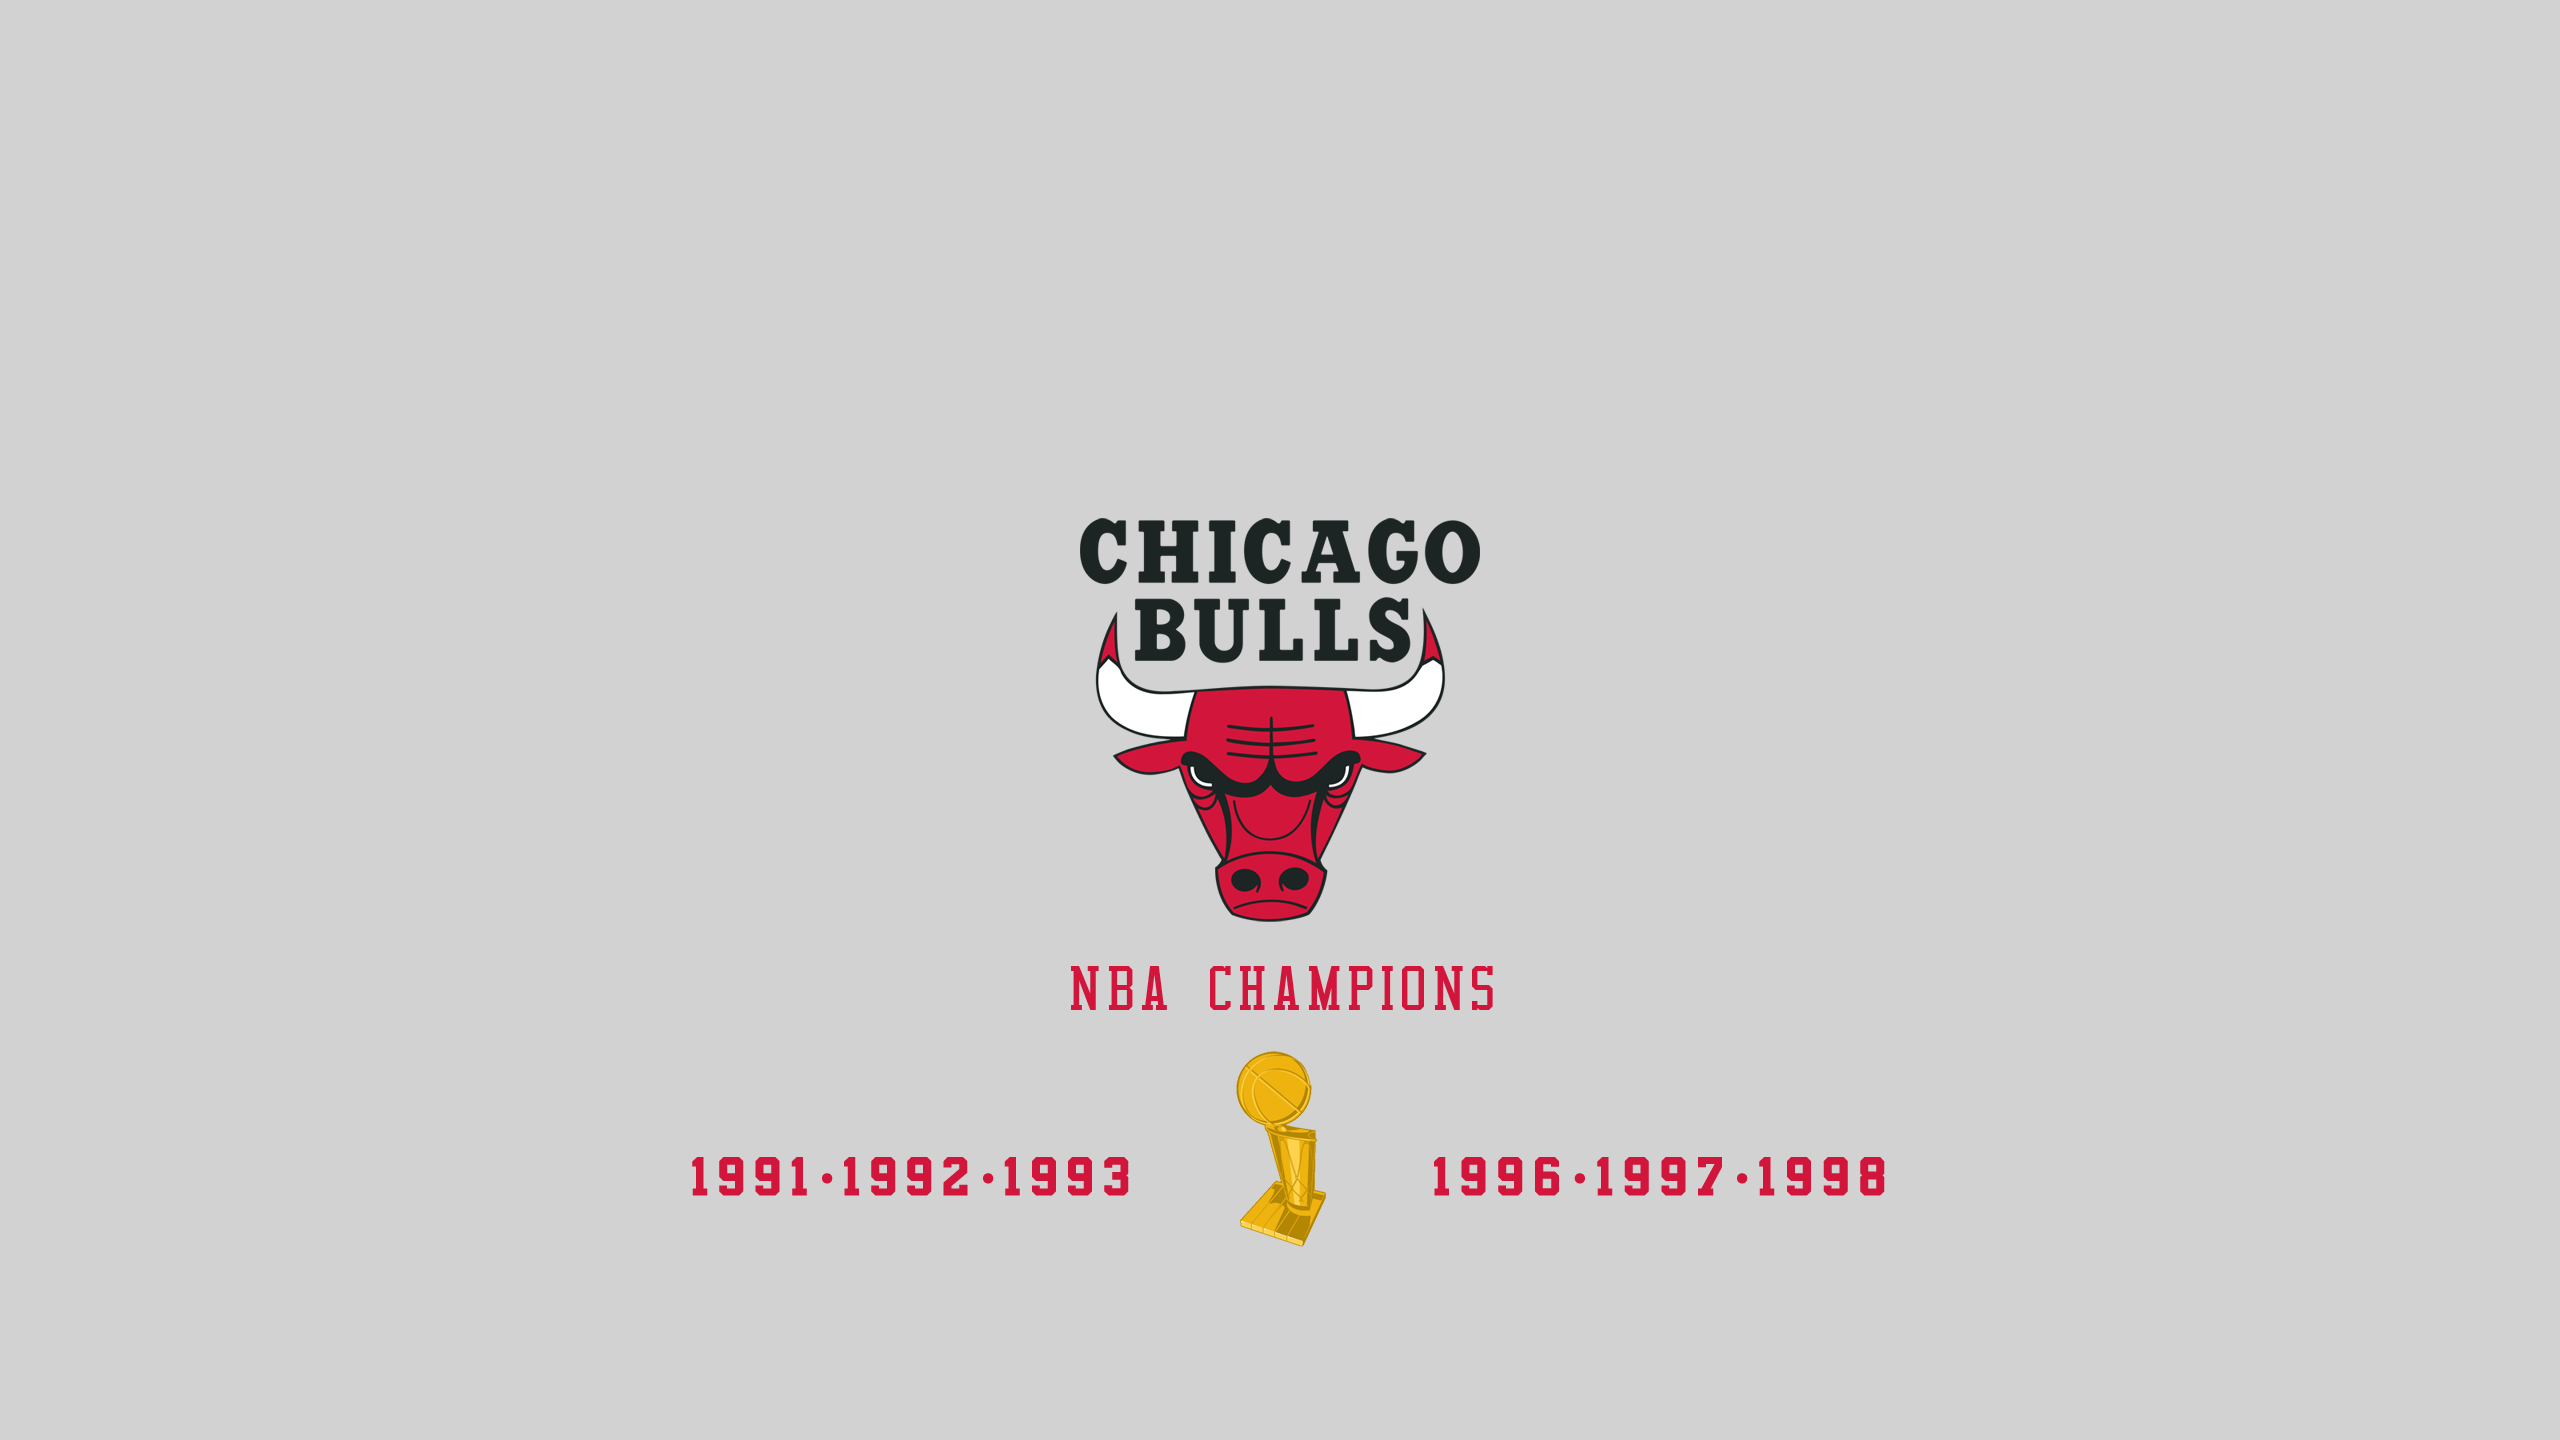 Chicago Bulls - NBA Champs